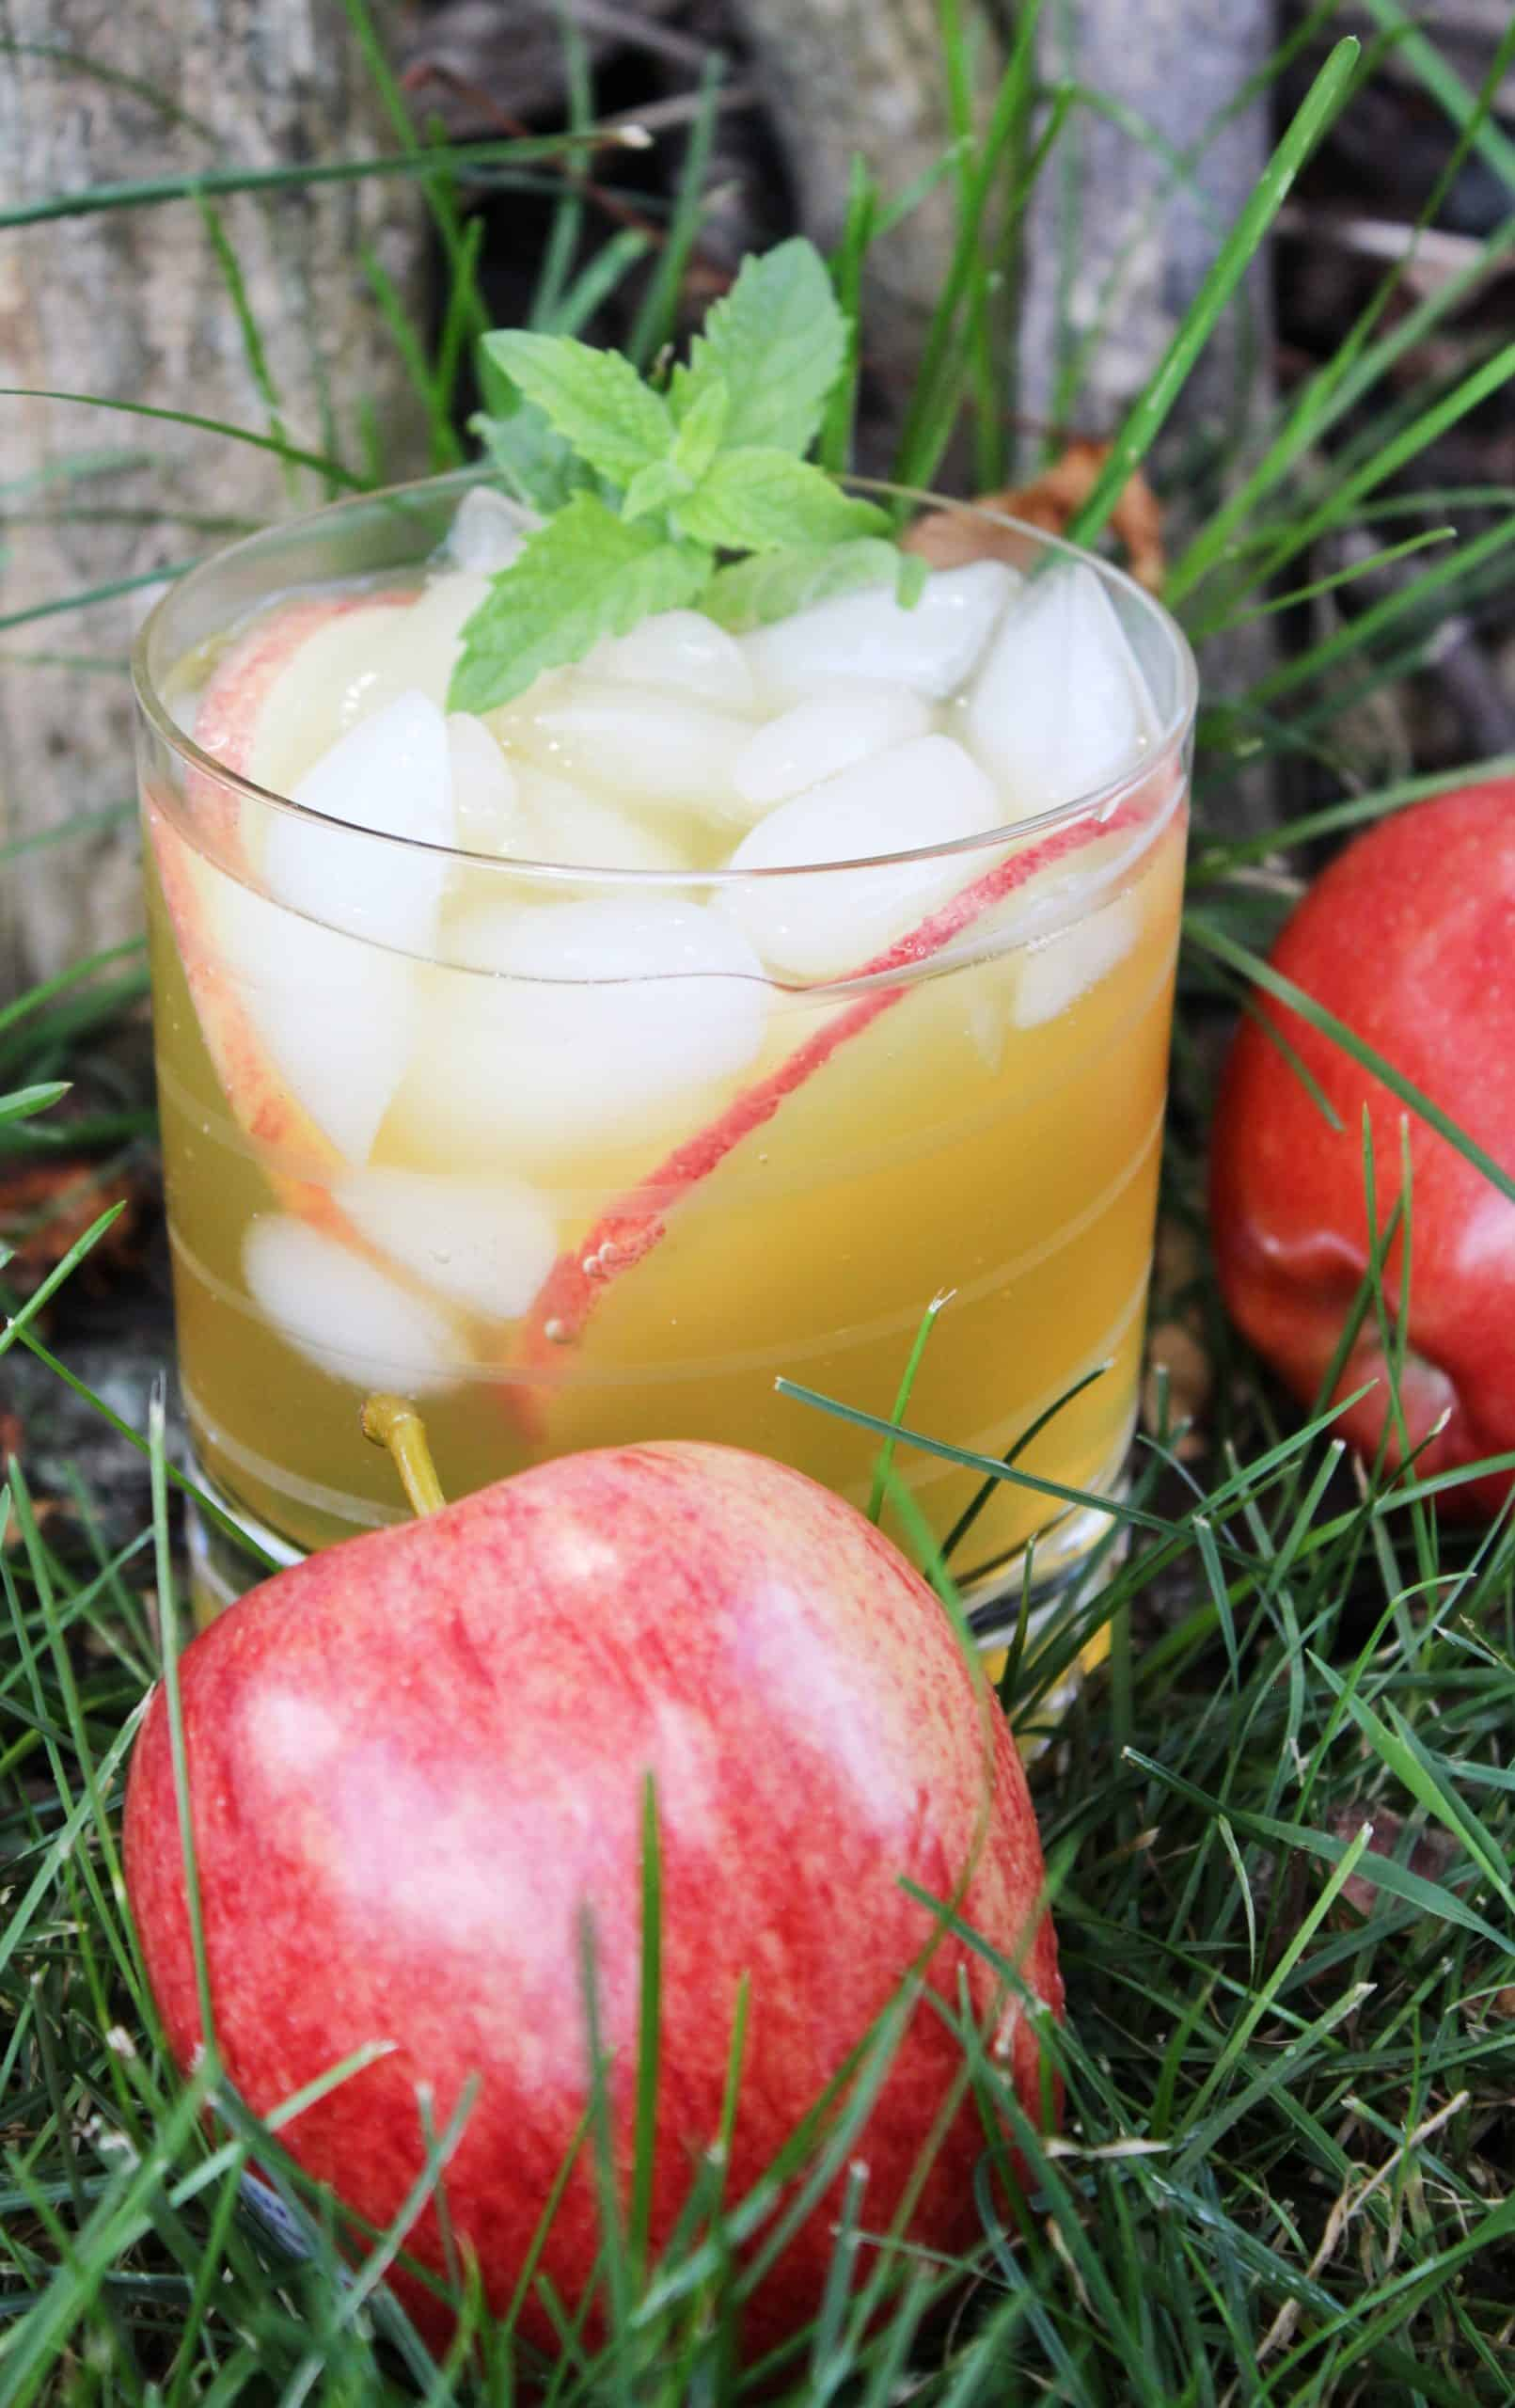 Apple cider cocktail with an apple on the side.